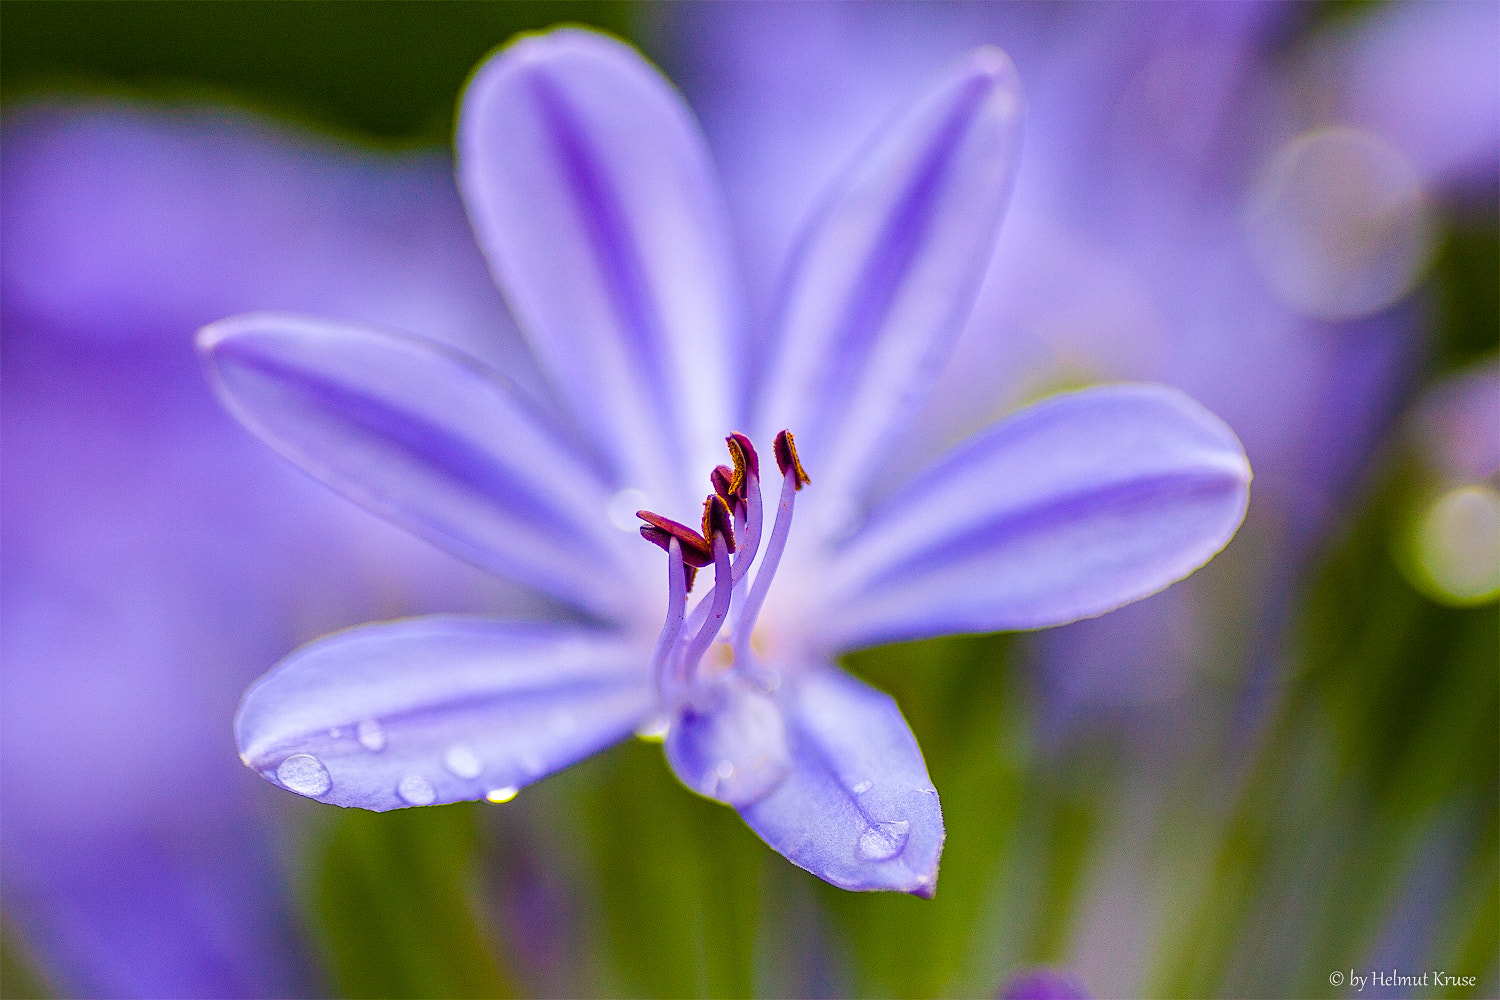 Photograph Flower details by Helmut Kruse on 500px